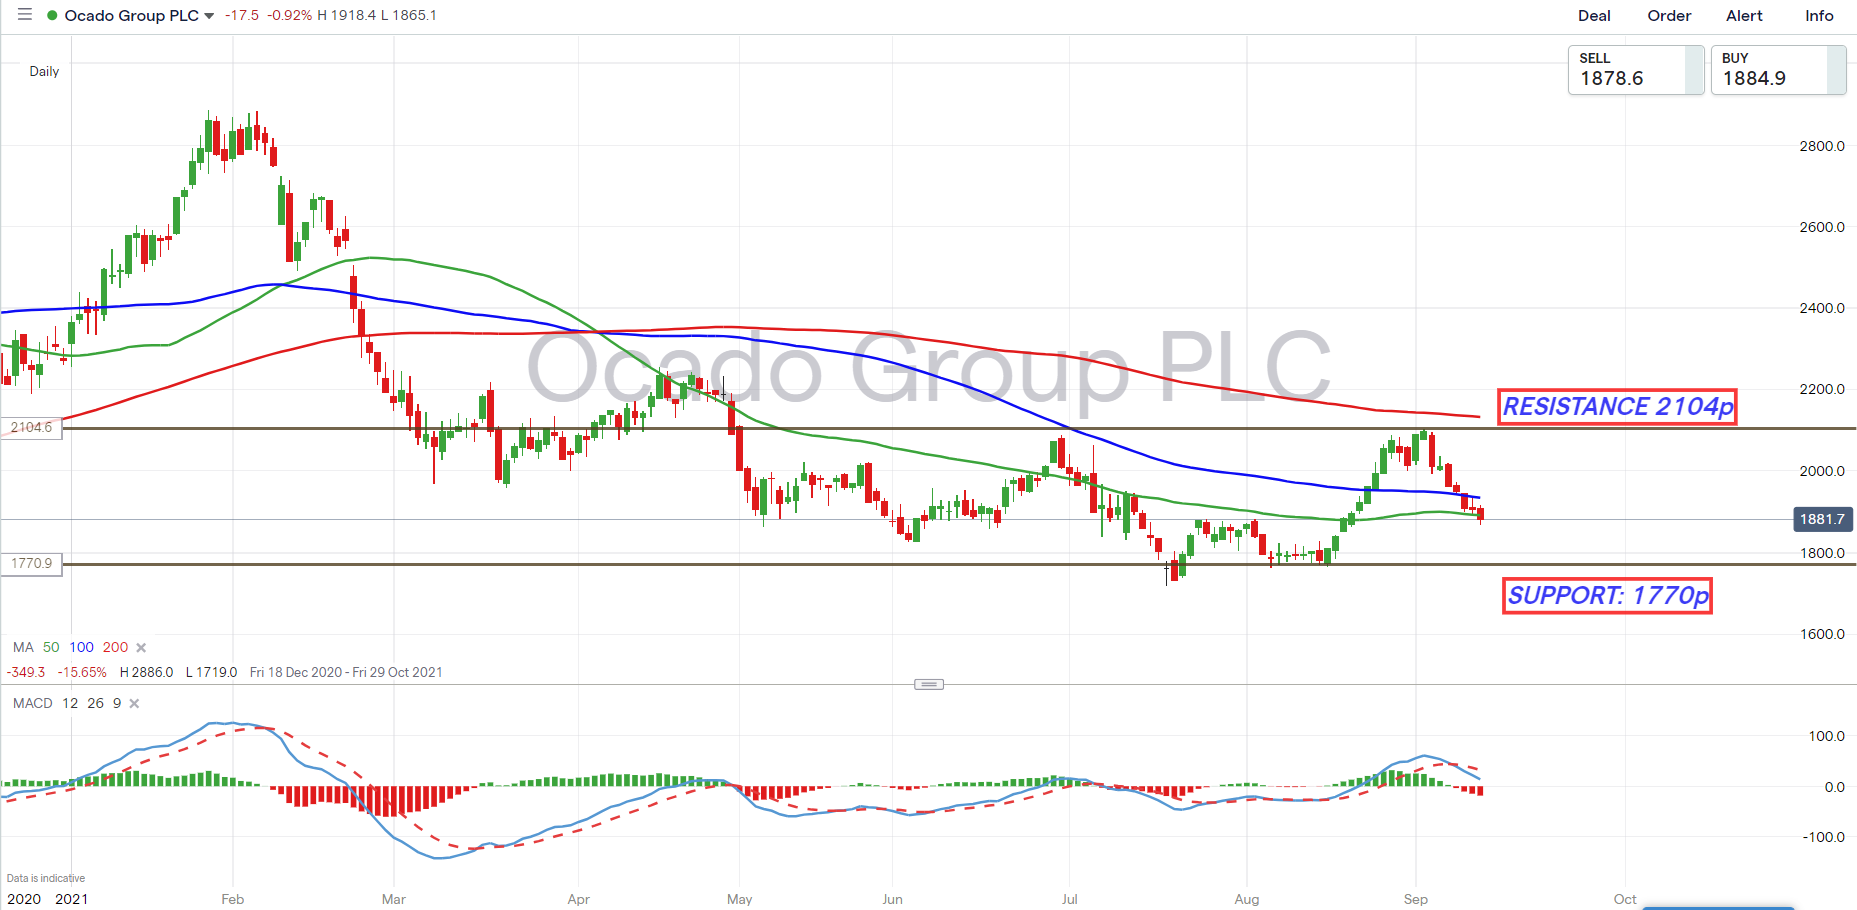 Ocado how to trade the update chart